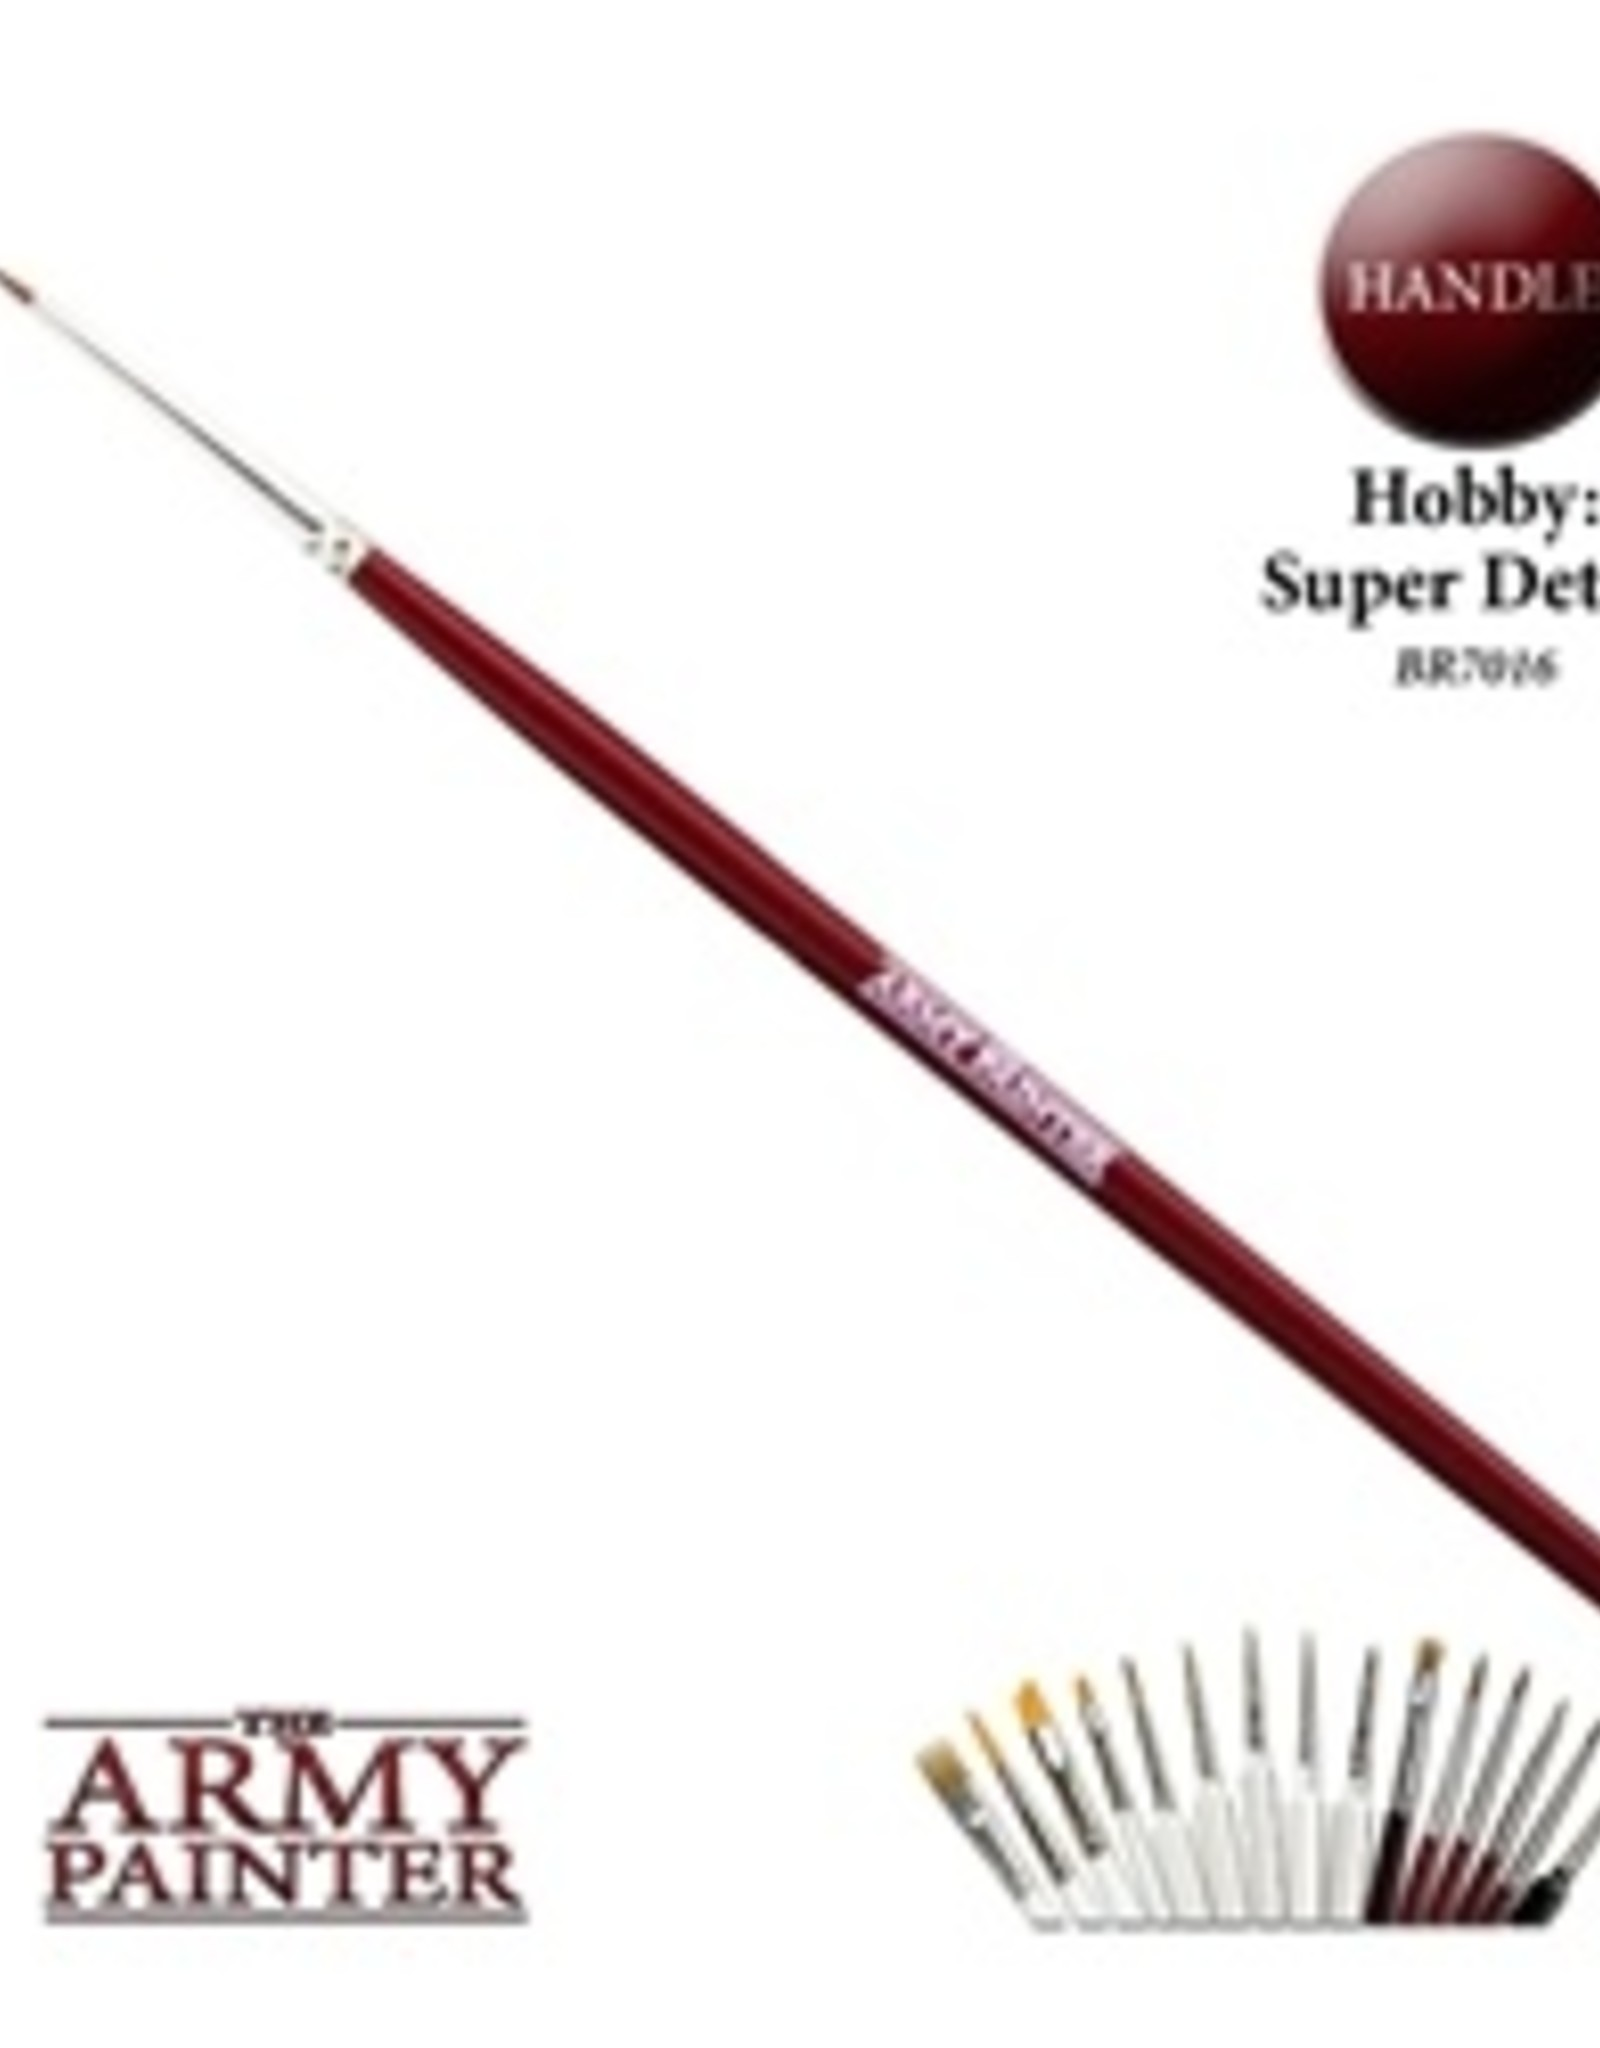 Army Painter Army Painter: Hobby - Super Detail Brush